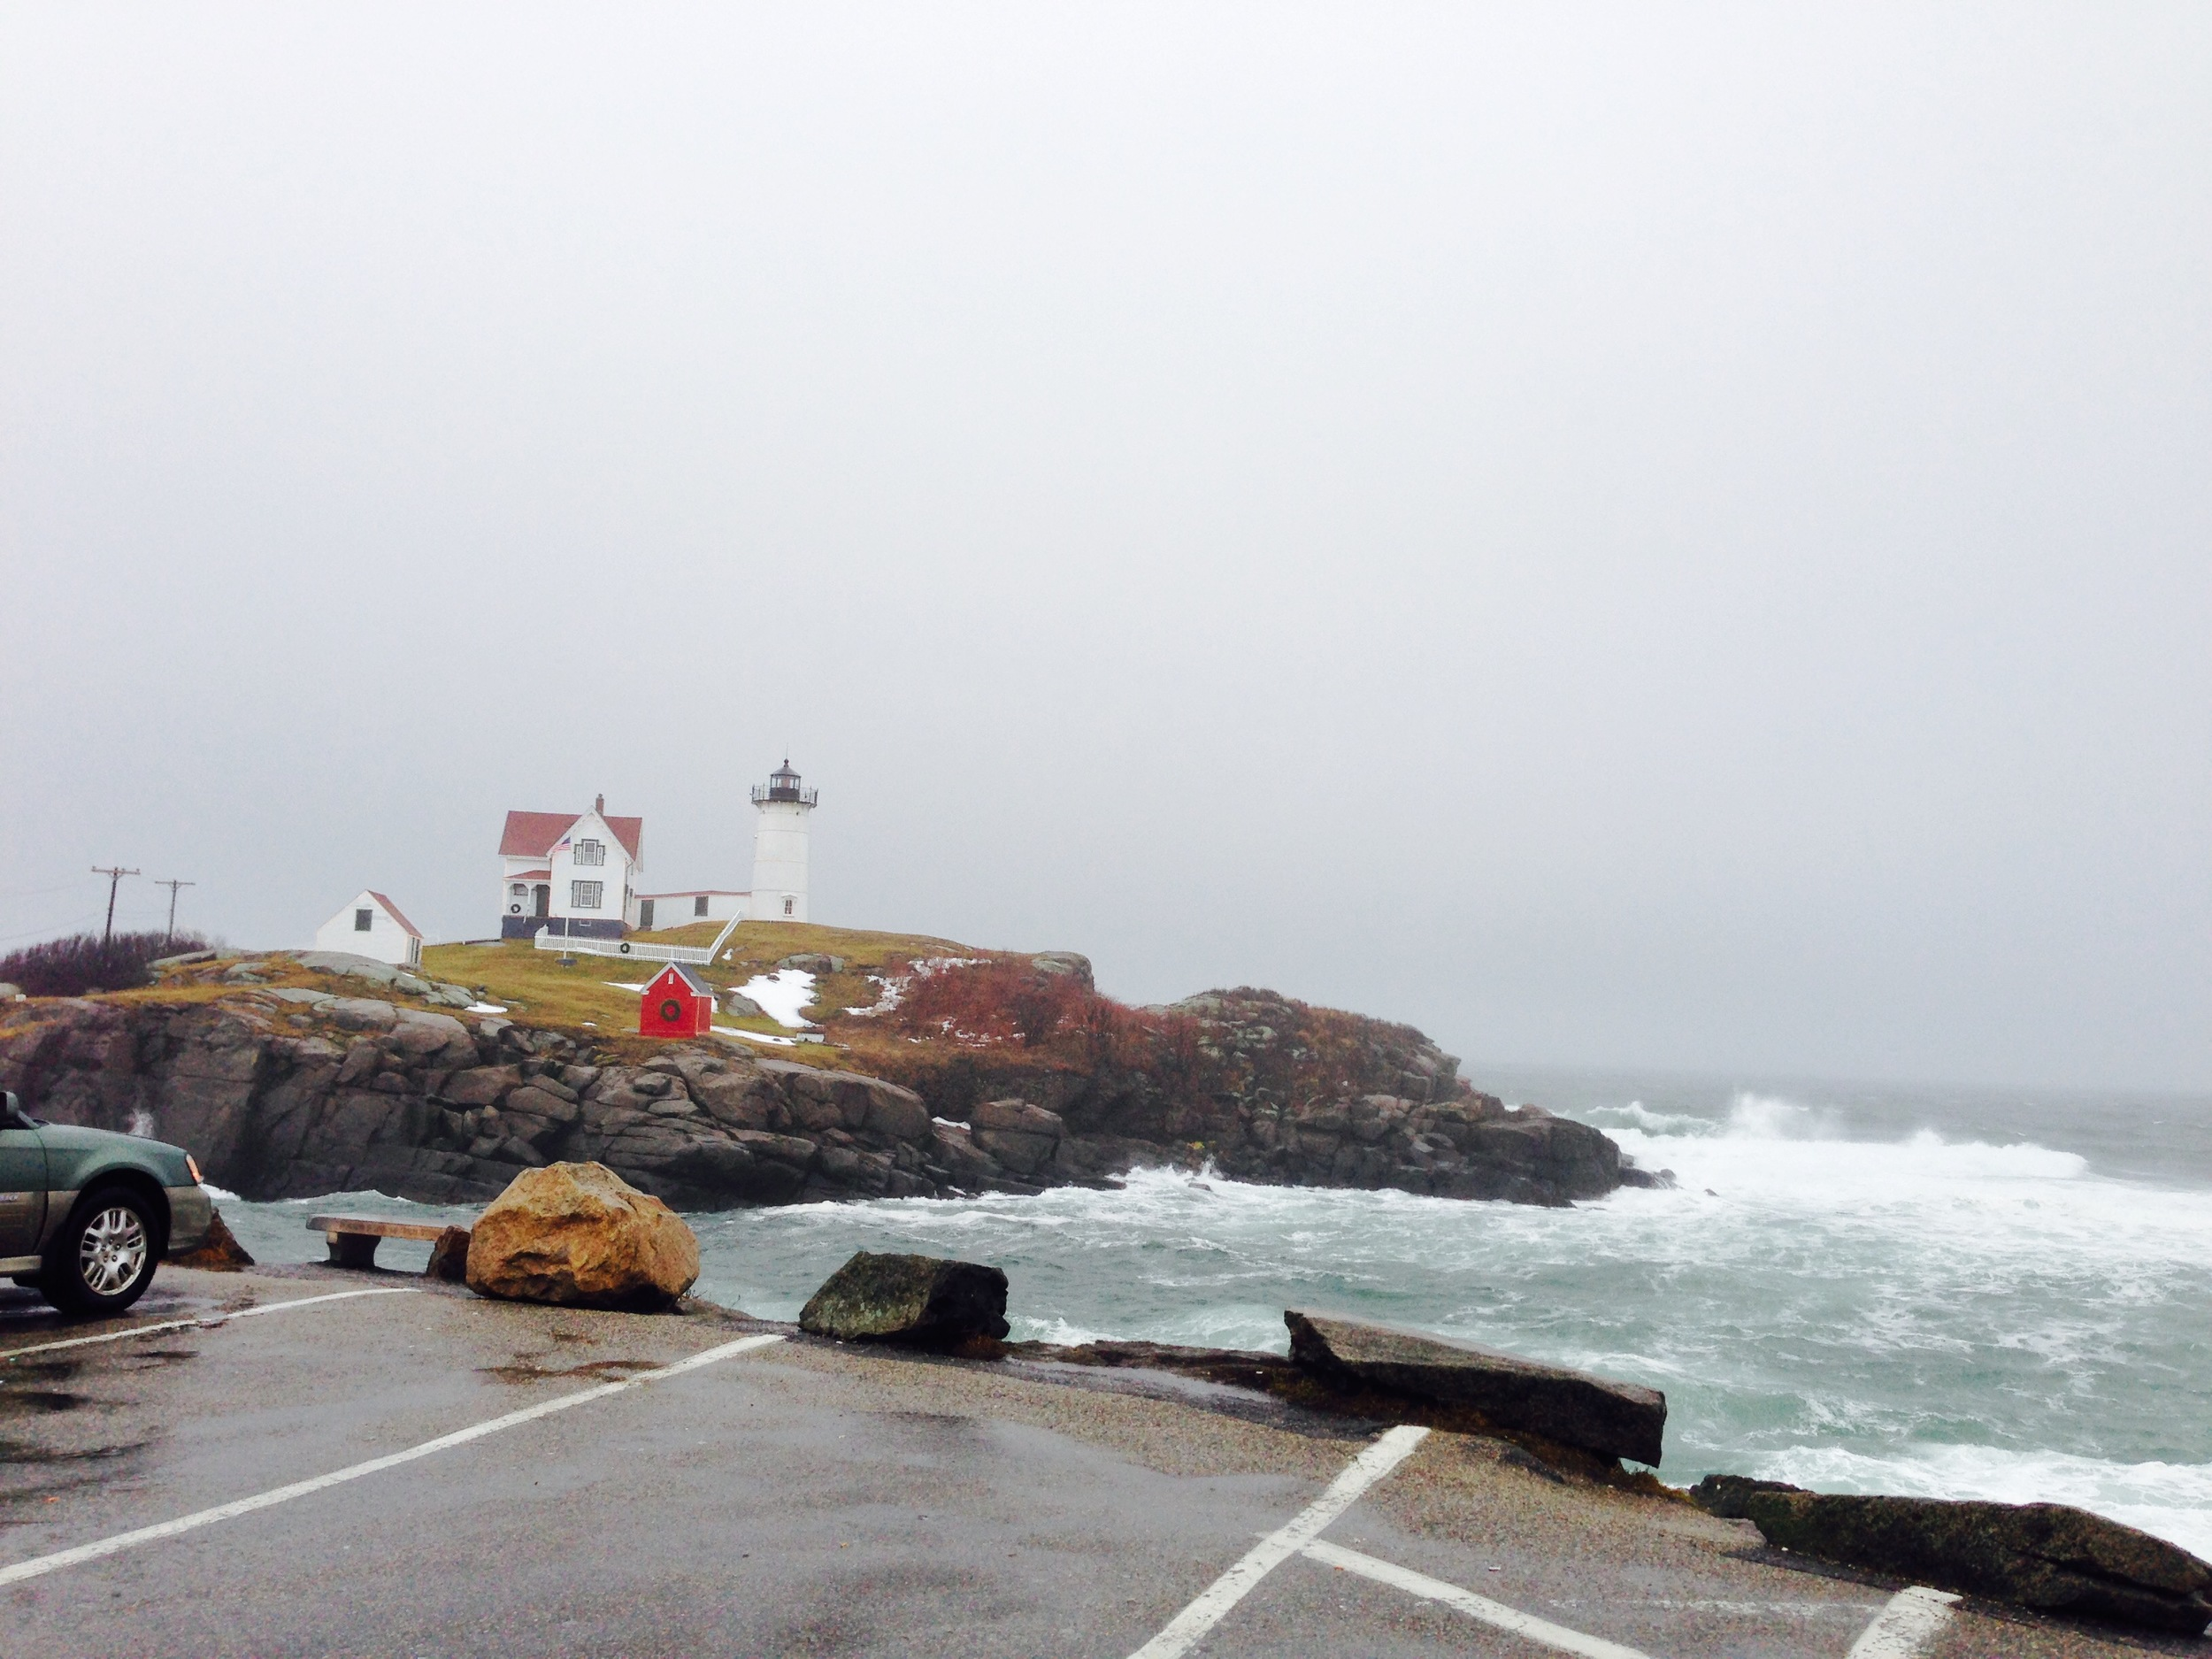 Normally, cars are backed up trying to get into the parking lot at Sohier Park, York Beach ME (Nubble Lighthouse) In January, drive up and park anywhere!